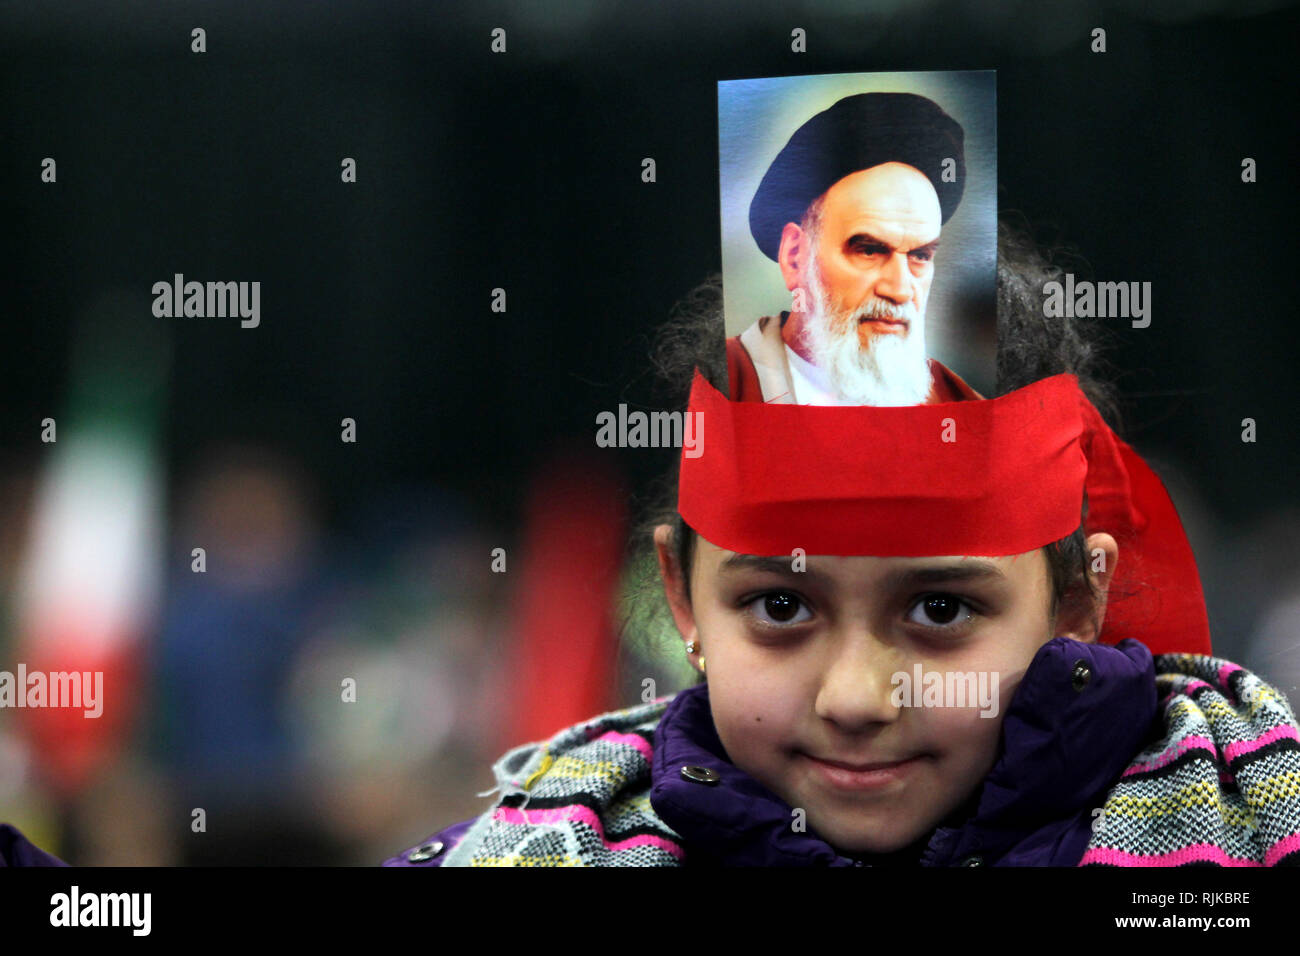 06 February 2019, Lebanon, Beirut: A girl with a picture, strapped to her head, of Ayatollah Khomeini, former Supreme Leader of Iran and leader of the 1979 Iranian Revolution, takes part in a rally by supporters of Hezbollah, the pro-Iranian Lebanese Islamist political party and militant group, to mark the 40th anniversary of the Iranian Islamic Revolution which toppled Mohammad Reza Pahlavi, the last Shah of Iran. Photo: Marwan Naamani/dpa - Stock Image